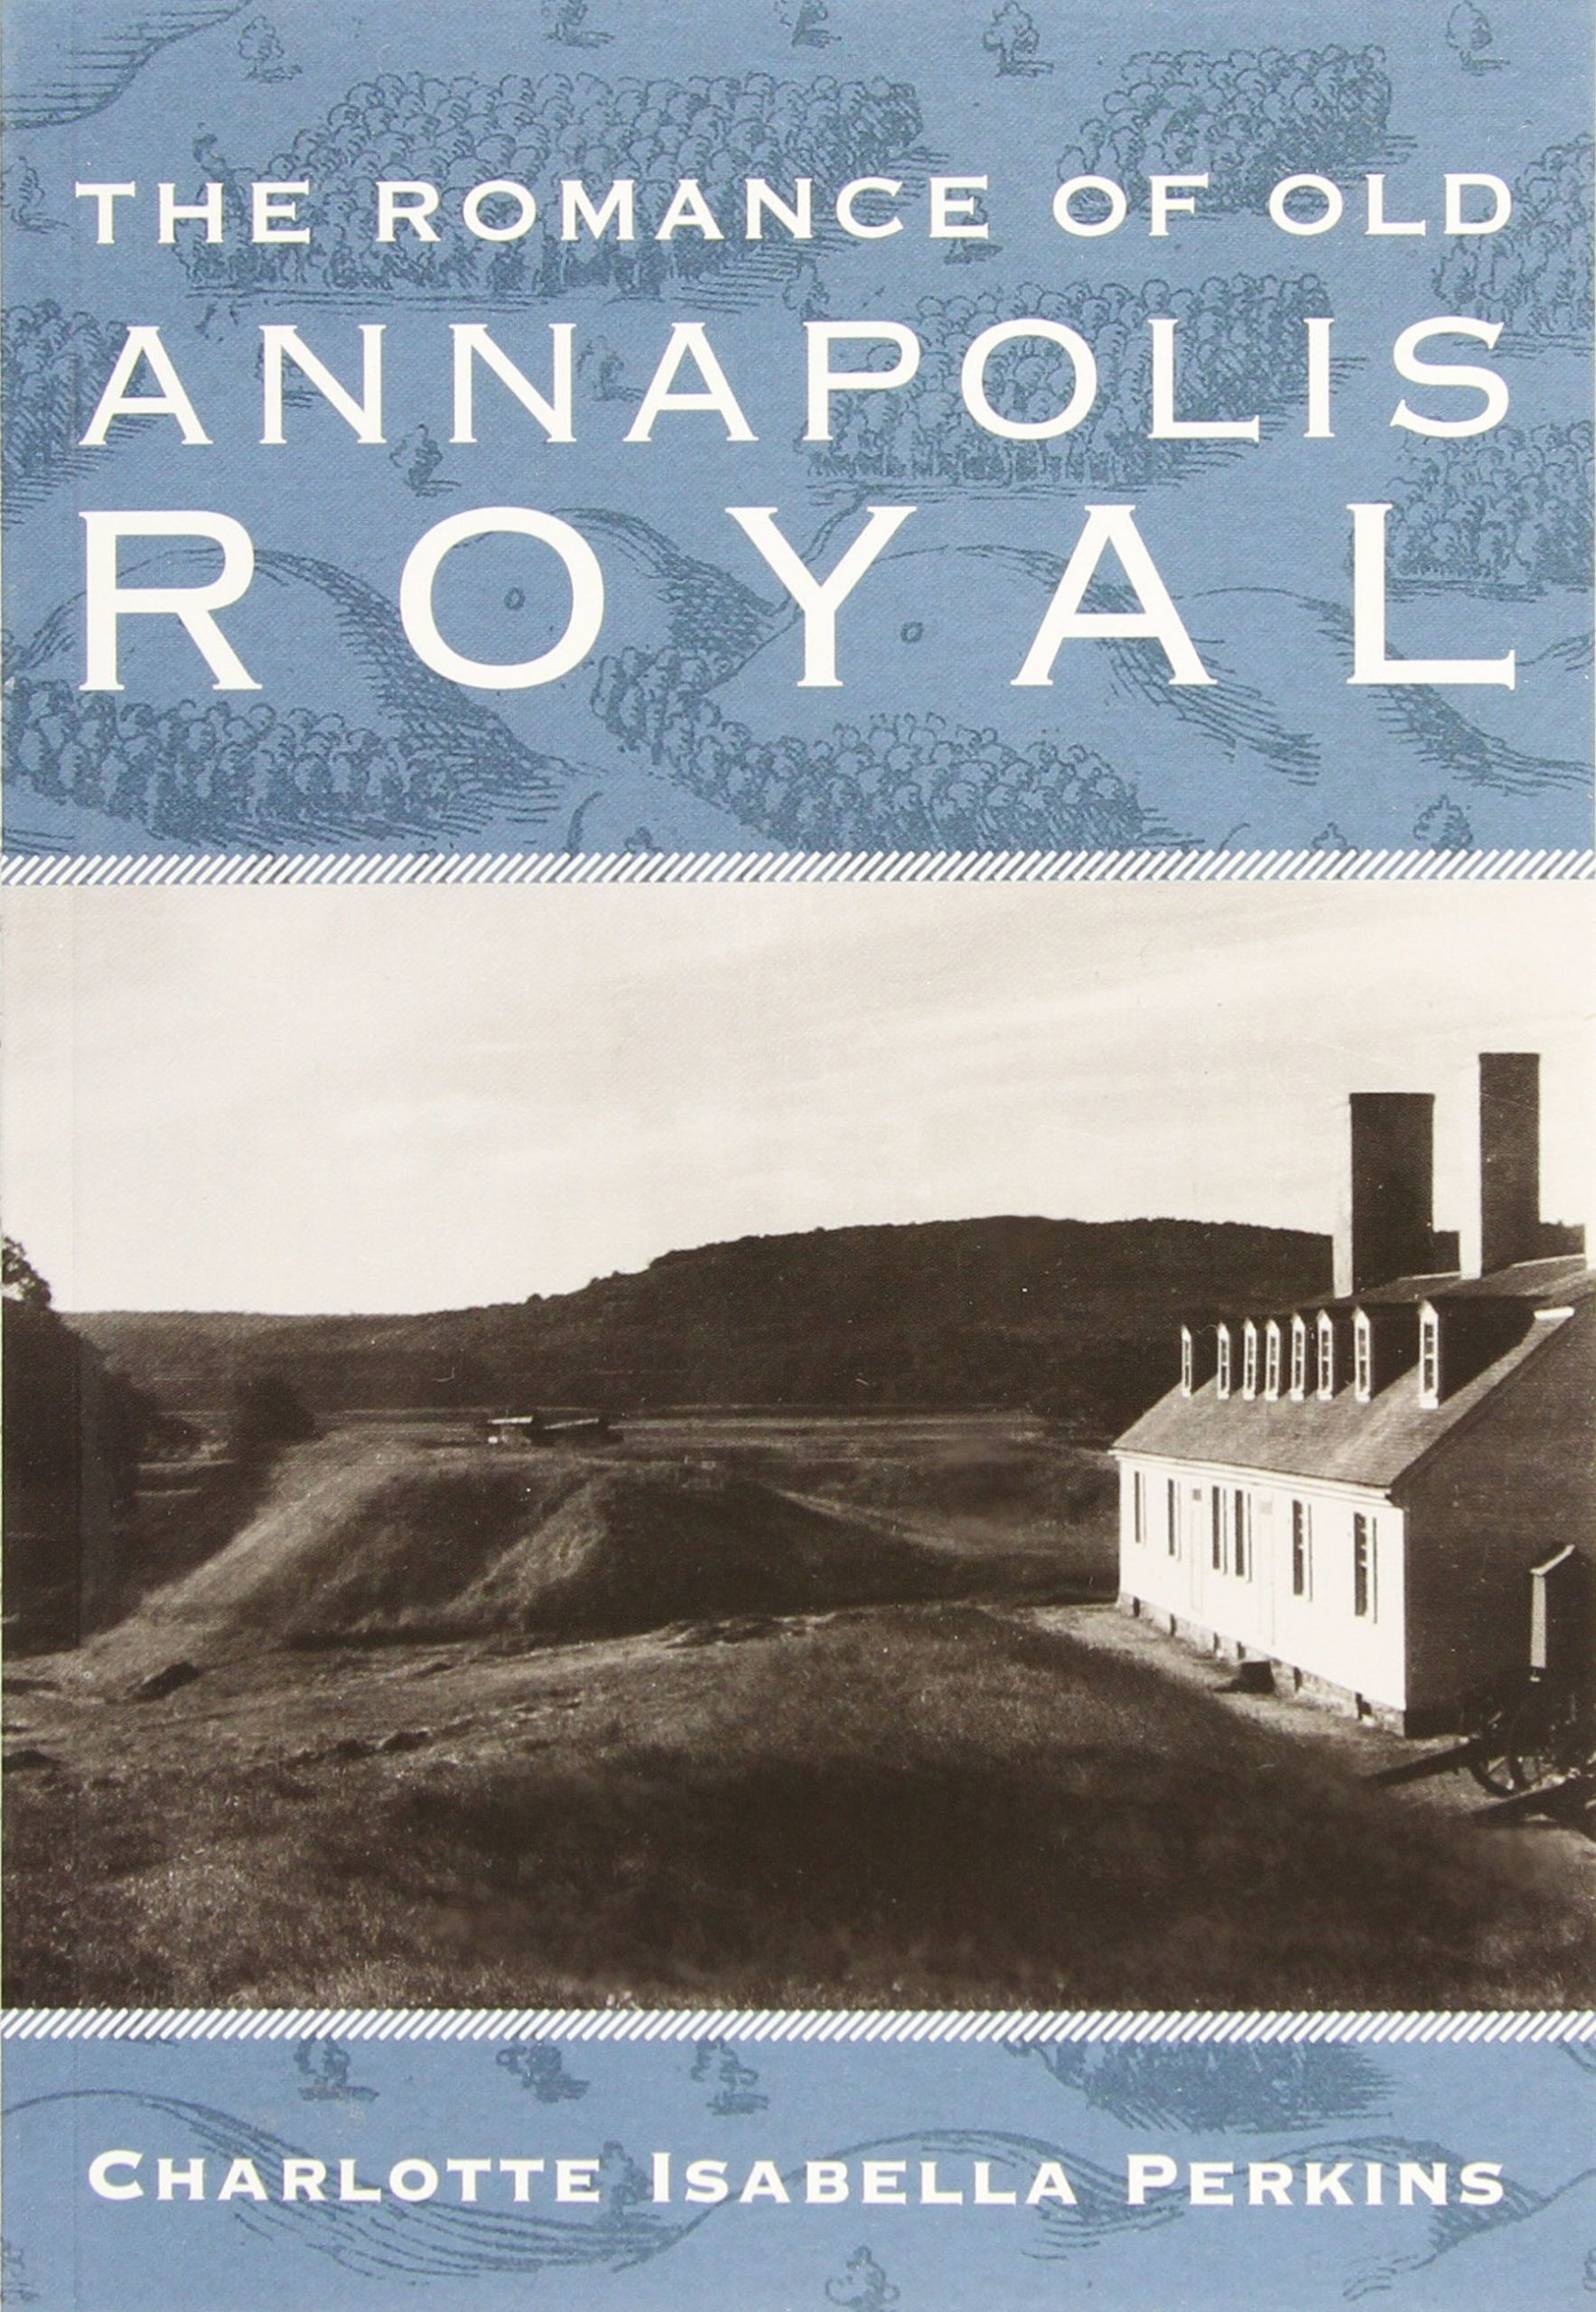 The Romance of Old Annapolis Royal